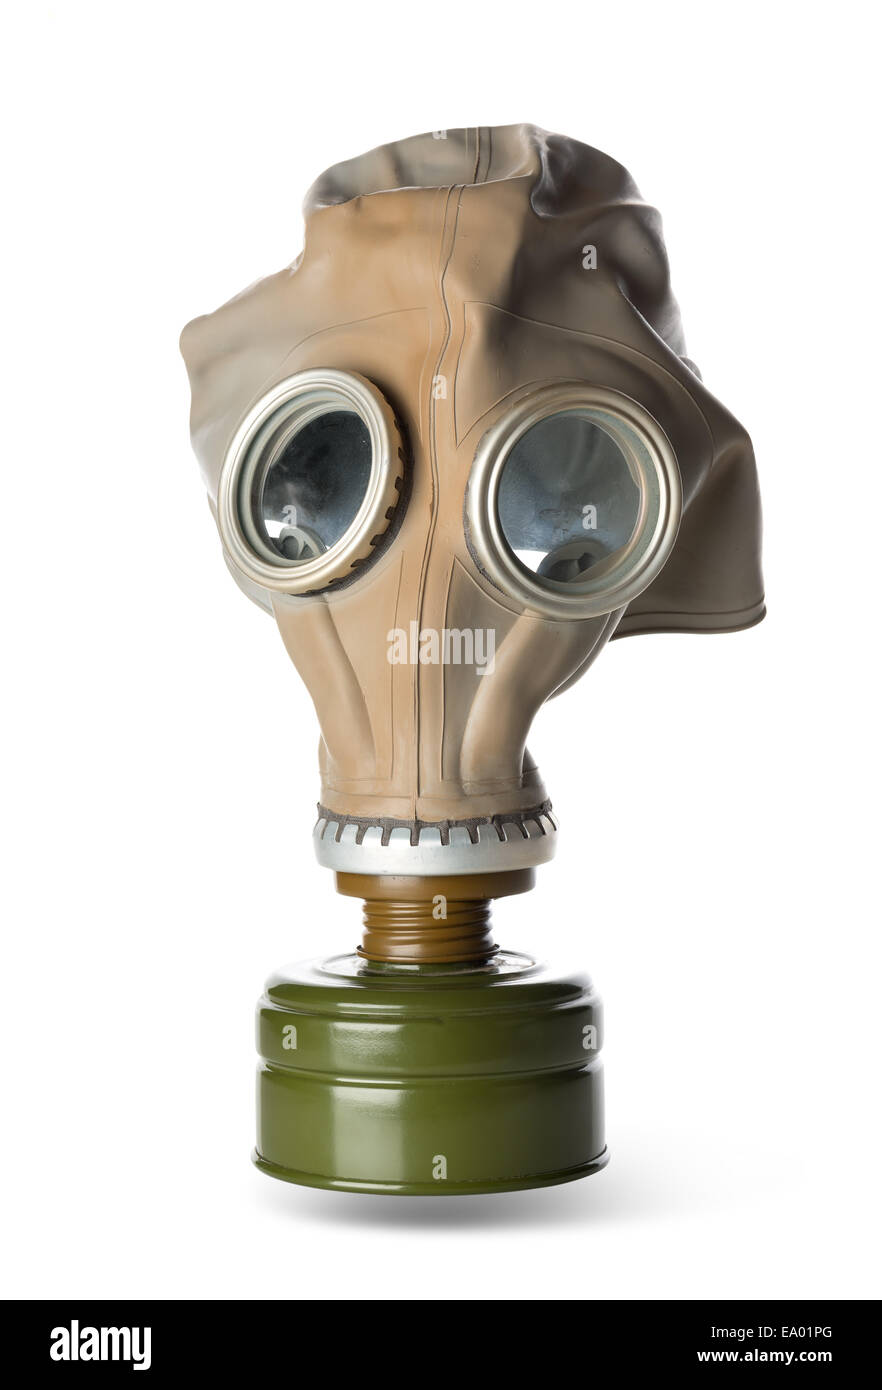 Rubber respirator isolated on a white background - Stock Image